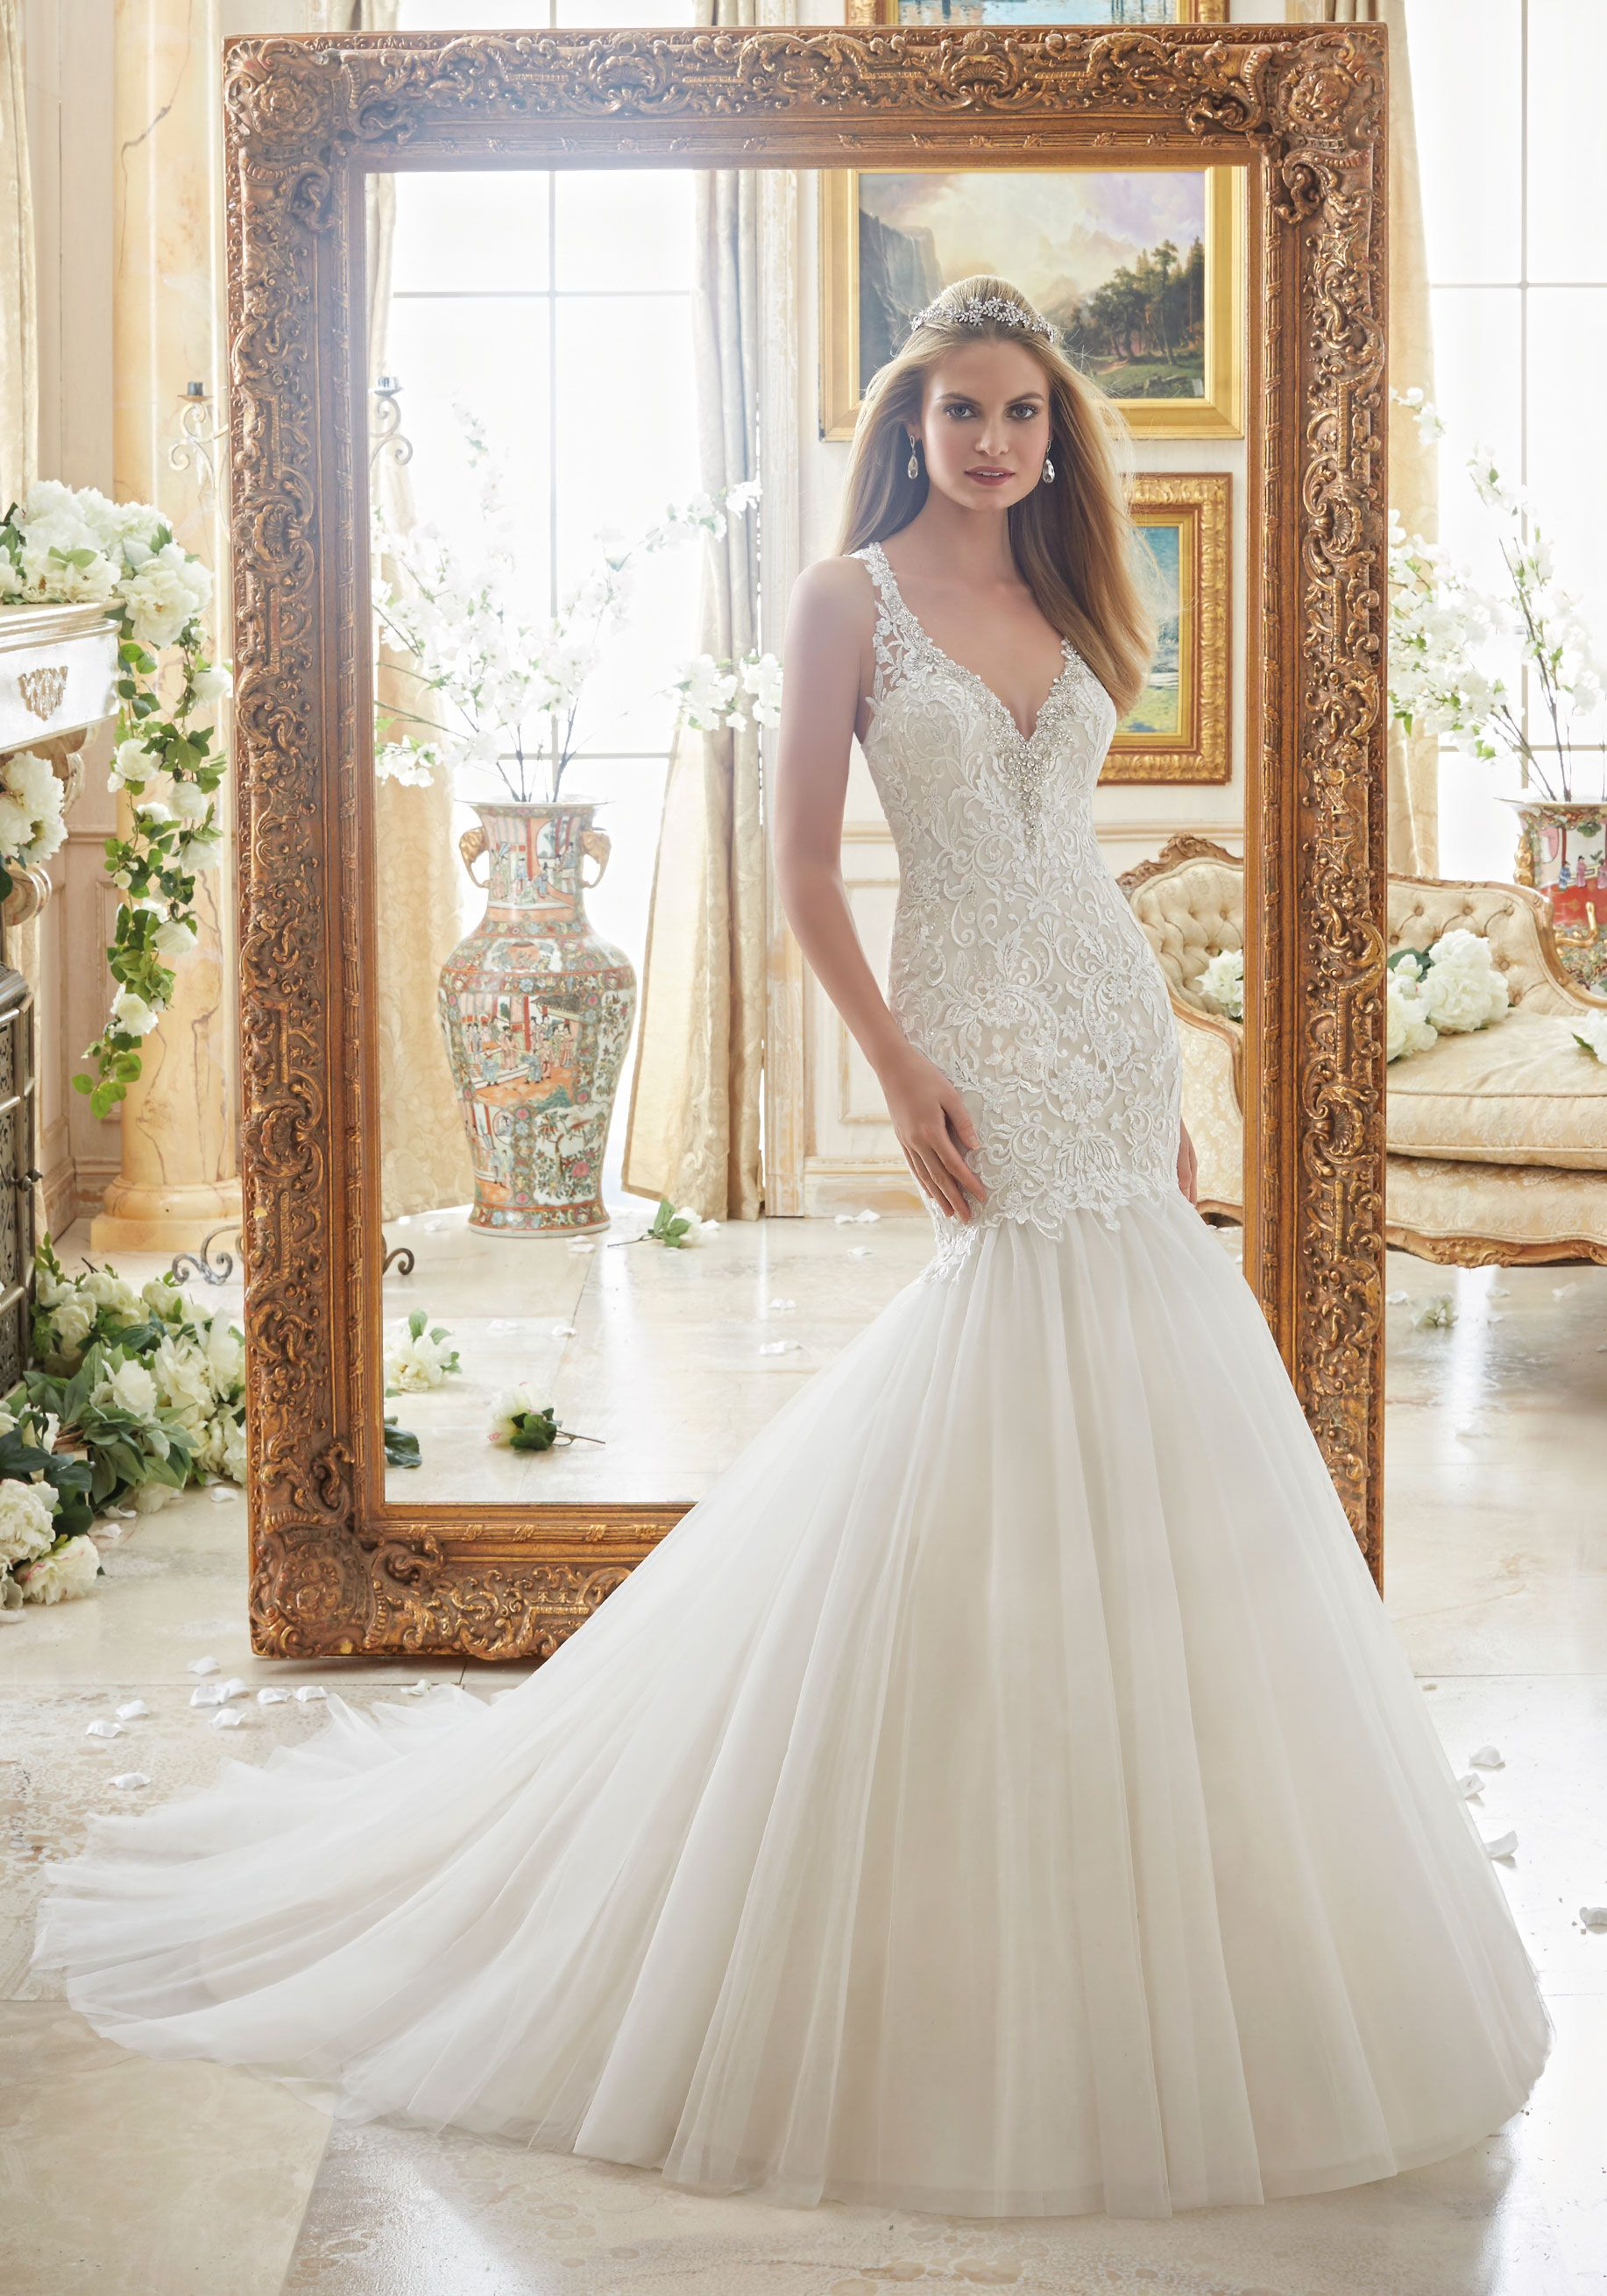 2885 Crystal Beaded Edging Meets Embroidered Appliques On Tulle Wedding Dress Designed By Madeline Gardner